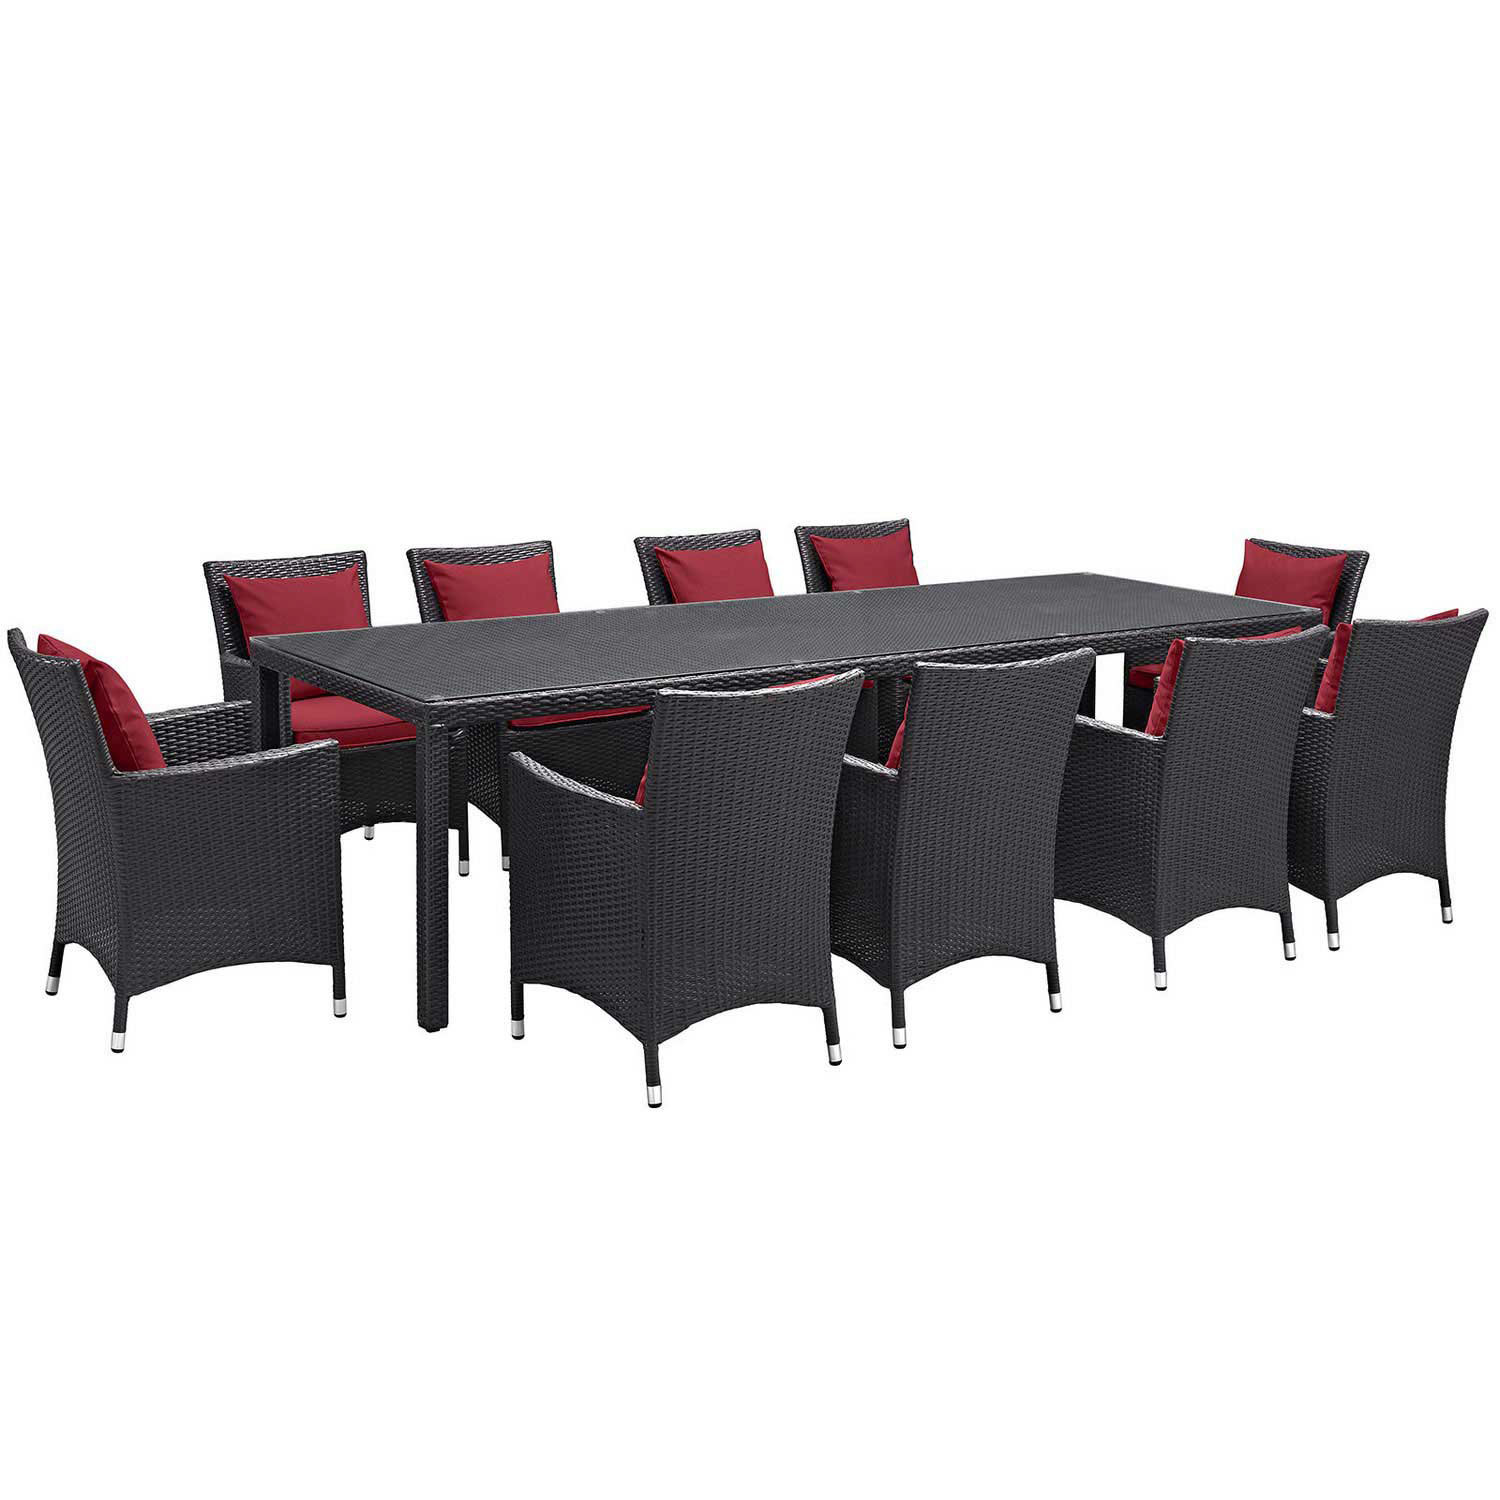 Modway Convene 11 Piece Outdoor Patio Dining Set - Espresso Red